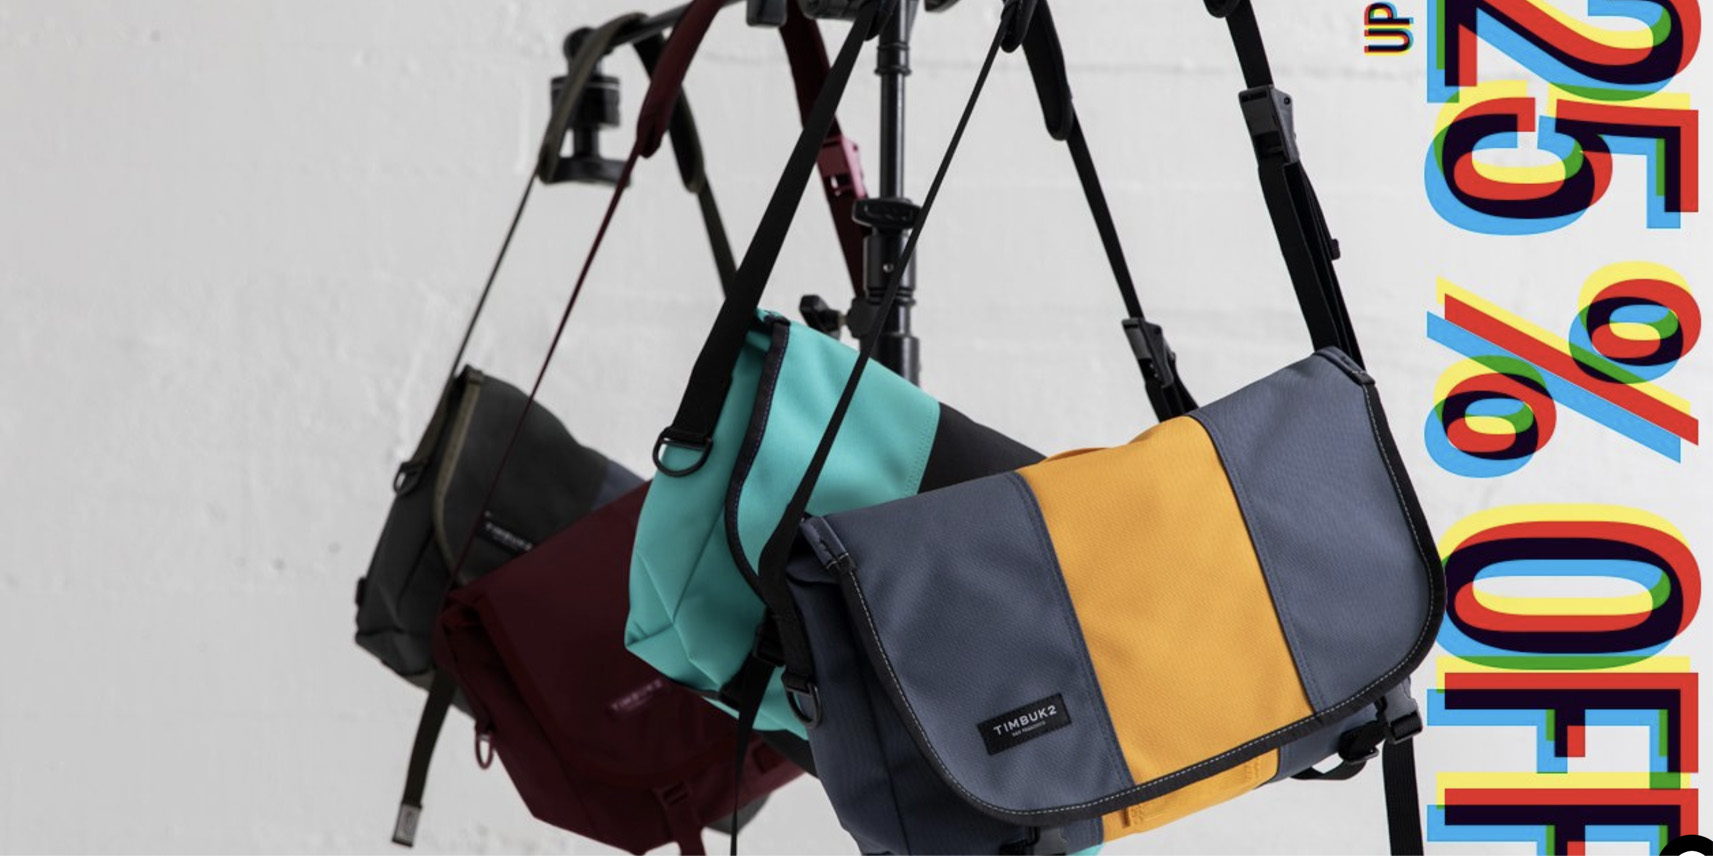 Timbuk2 takes up to 25% off MacBook backpacks, messenger bags & more + free shipping